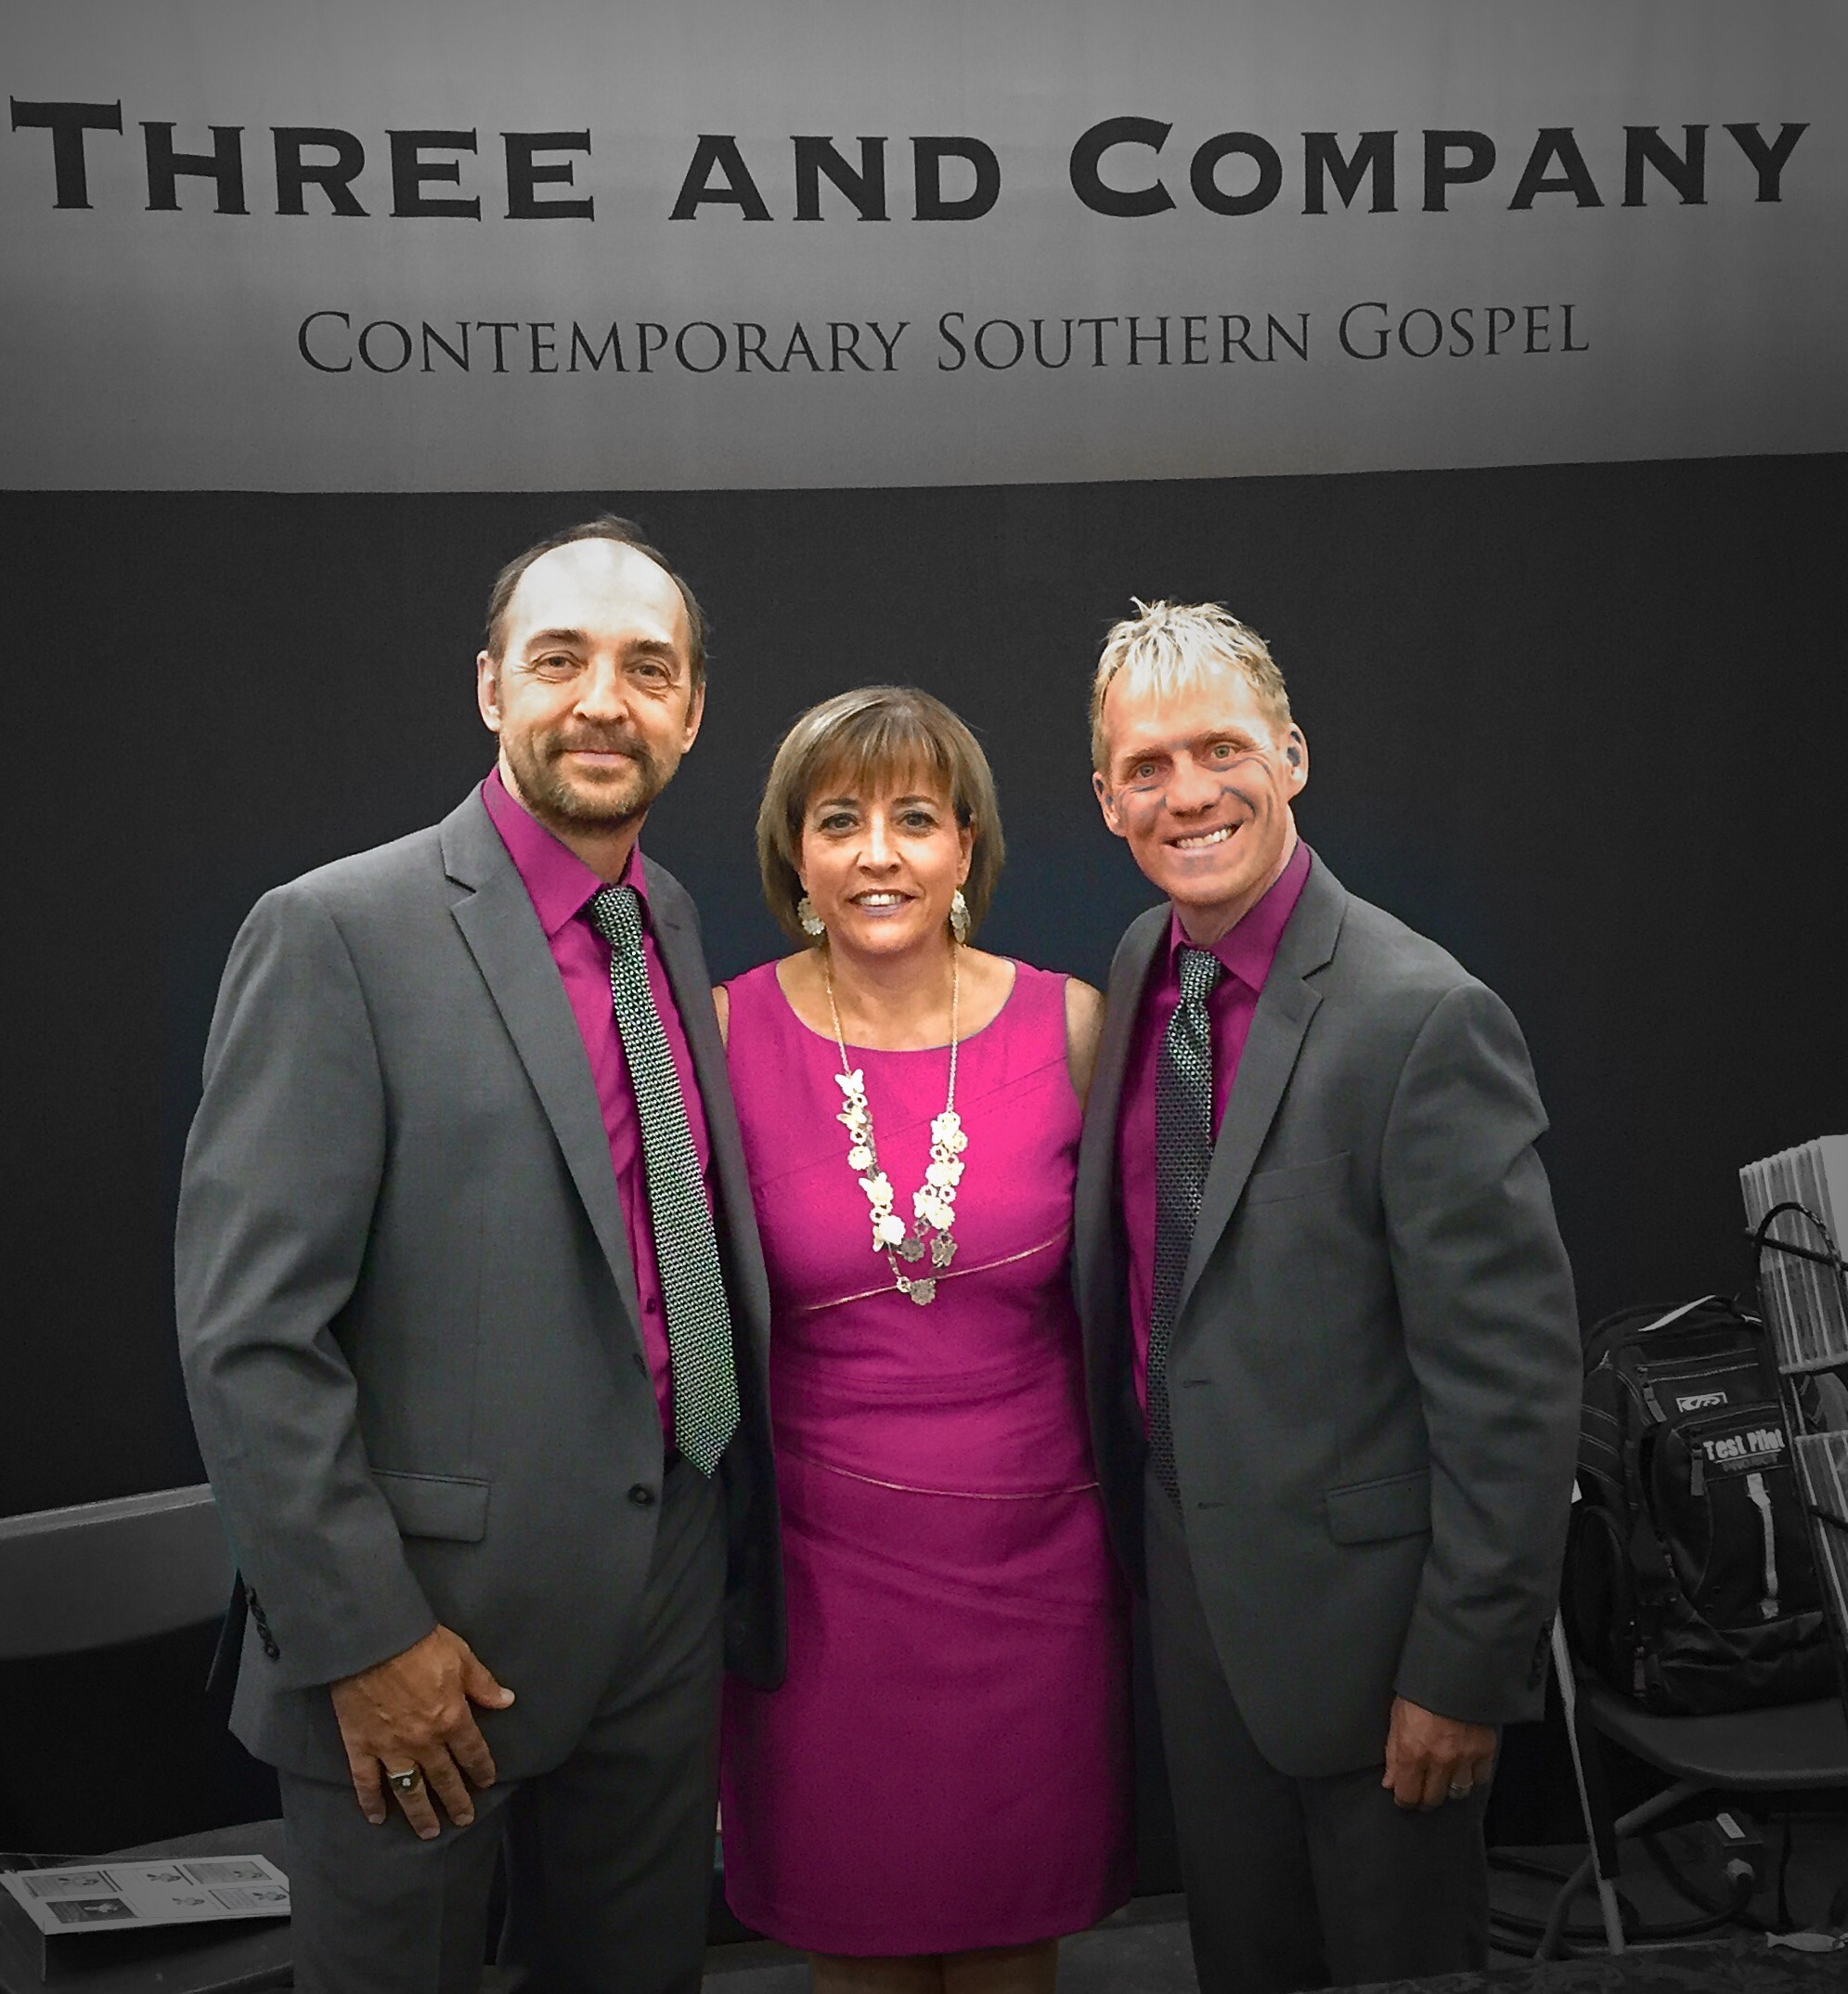 """Photo by Duane Roset, he called us """"One Shade Of Grey"""". Dianne co-ordinated our colors and we had lots of comments on the colors!  Great event in Red Deer again this year.  Thanks to all who stopped by the booth."""